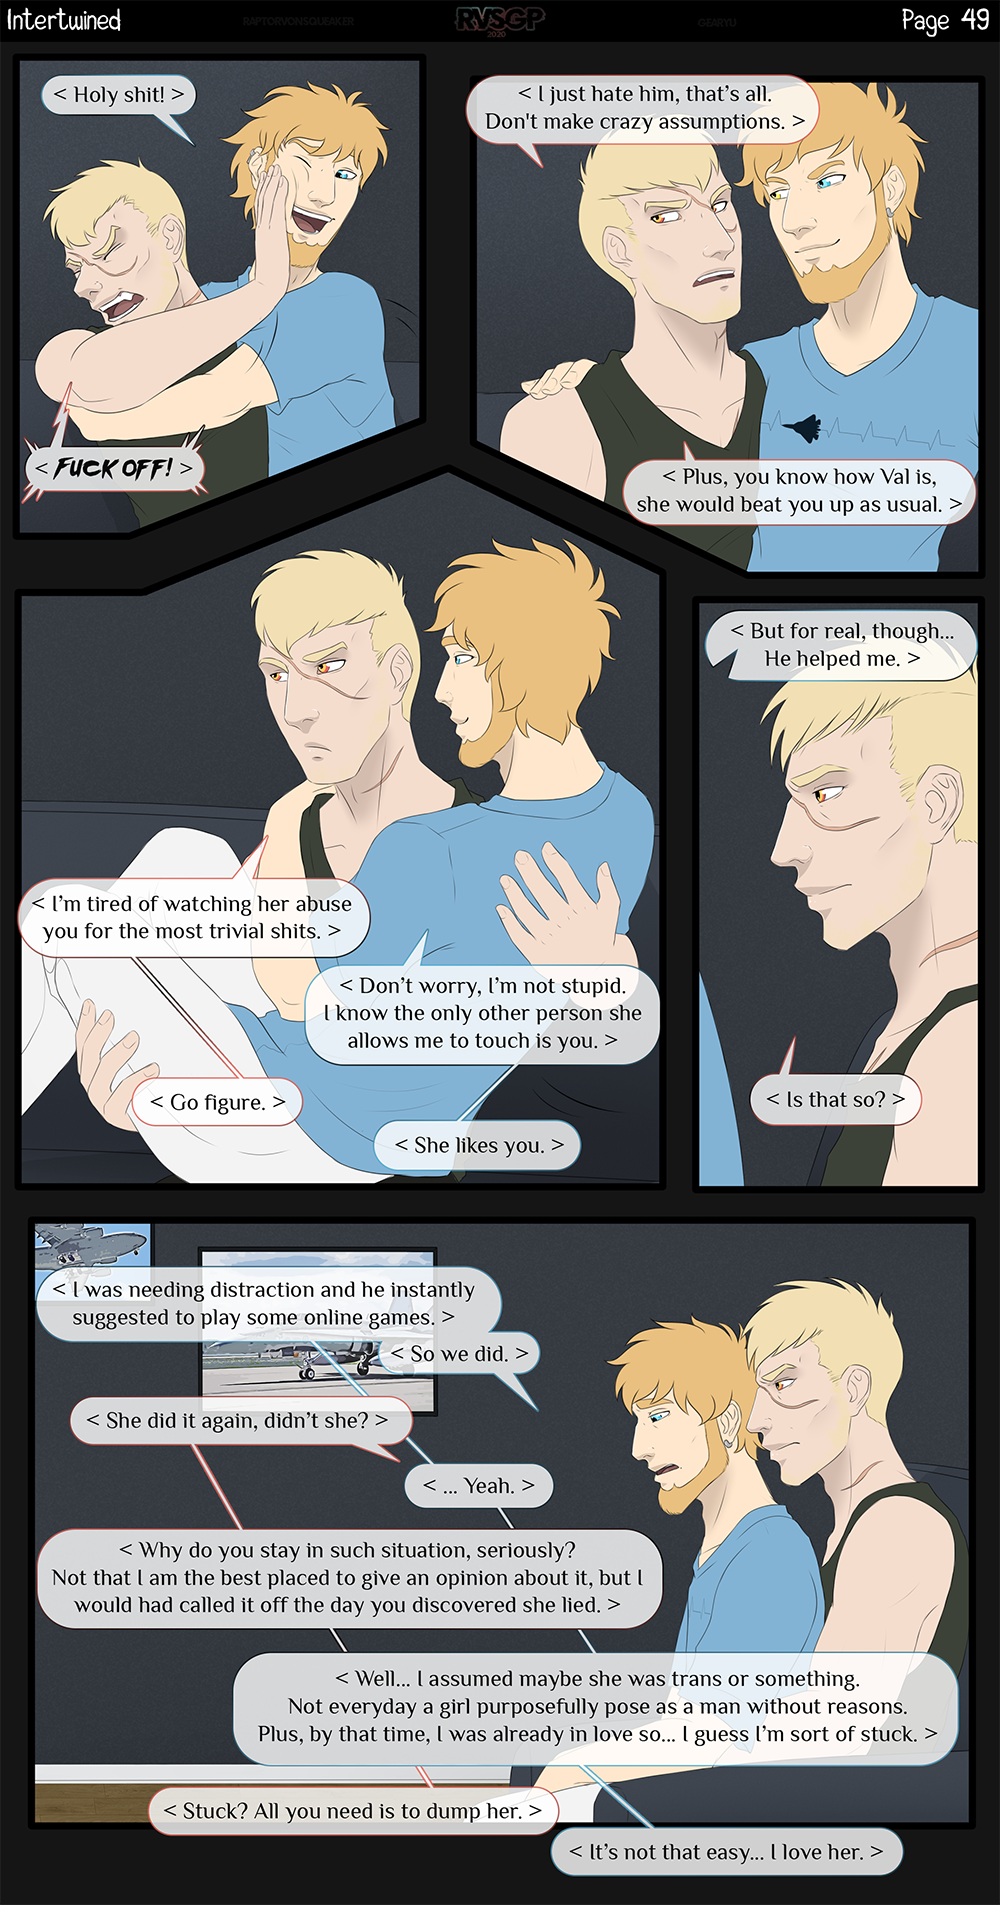 Page 49 - Abuse.